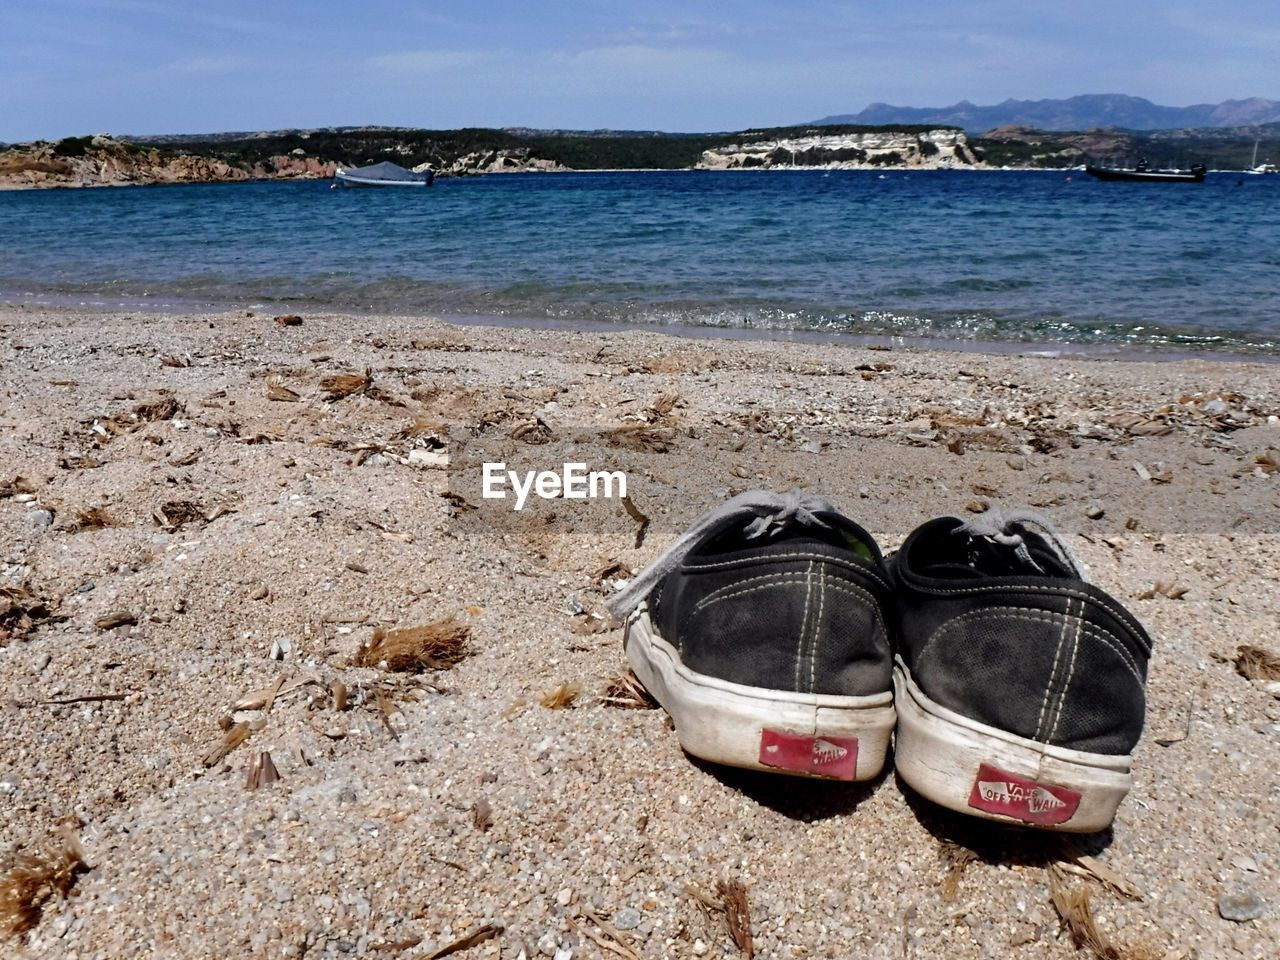 HIGH ANGLE VIEW OF SHOES ON SAND AT BEACH